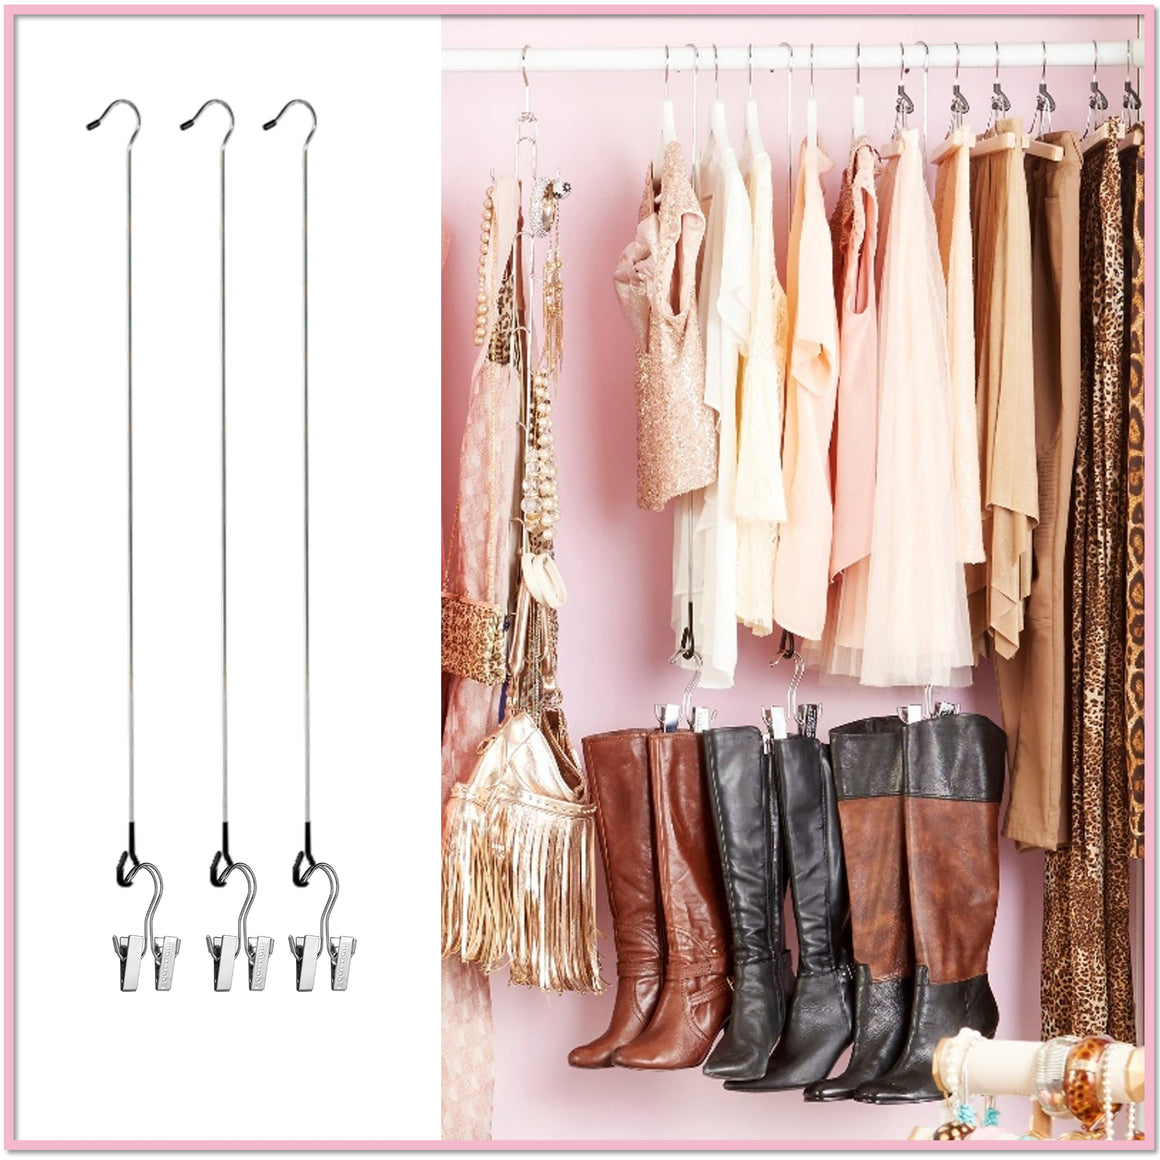 Easy Reach™ Extender System (3 Rods + 3 Boot Hangers)   Boottique